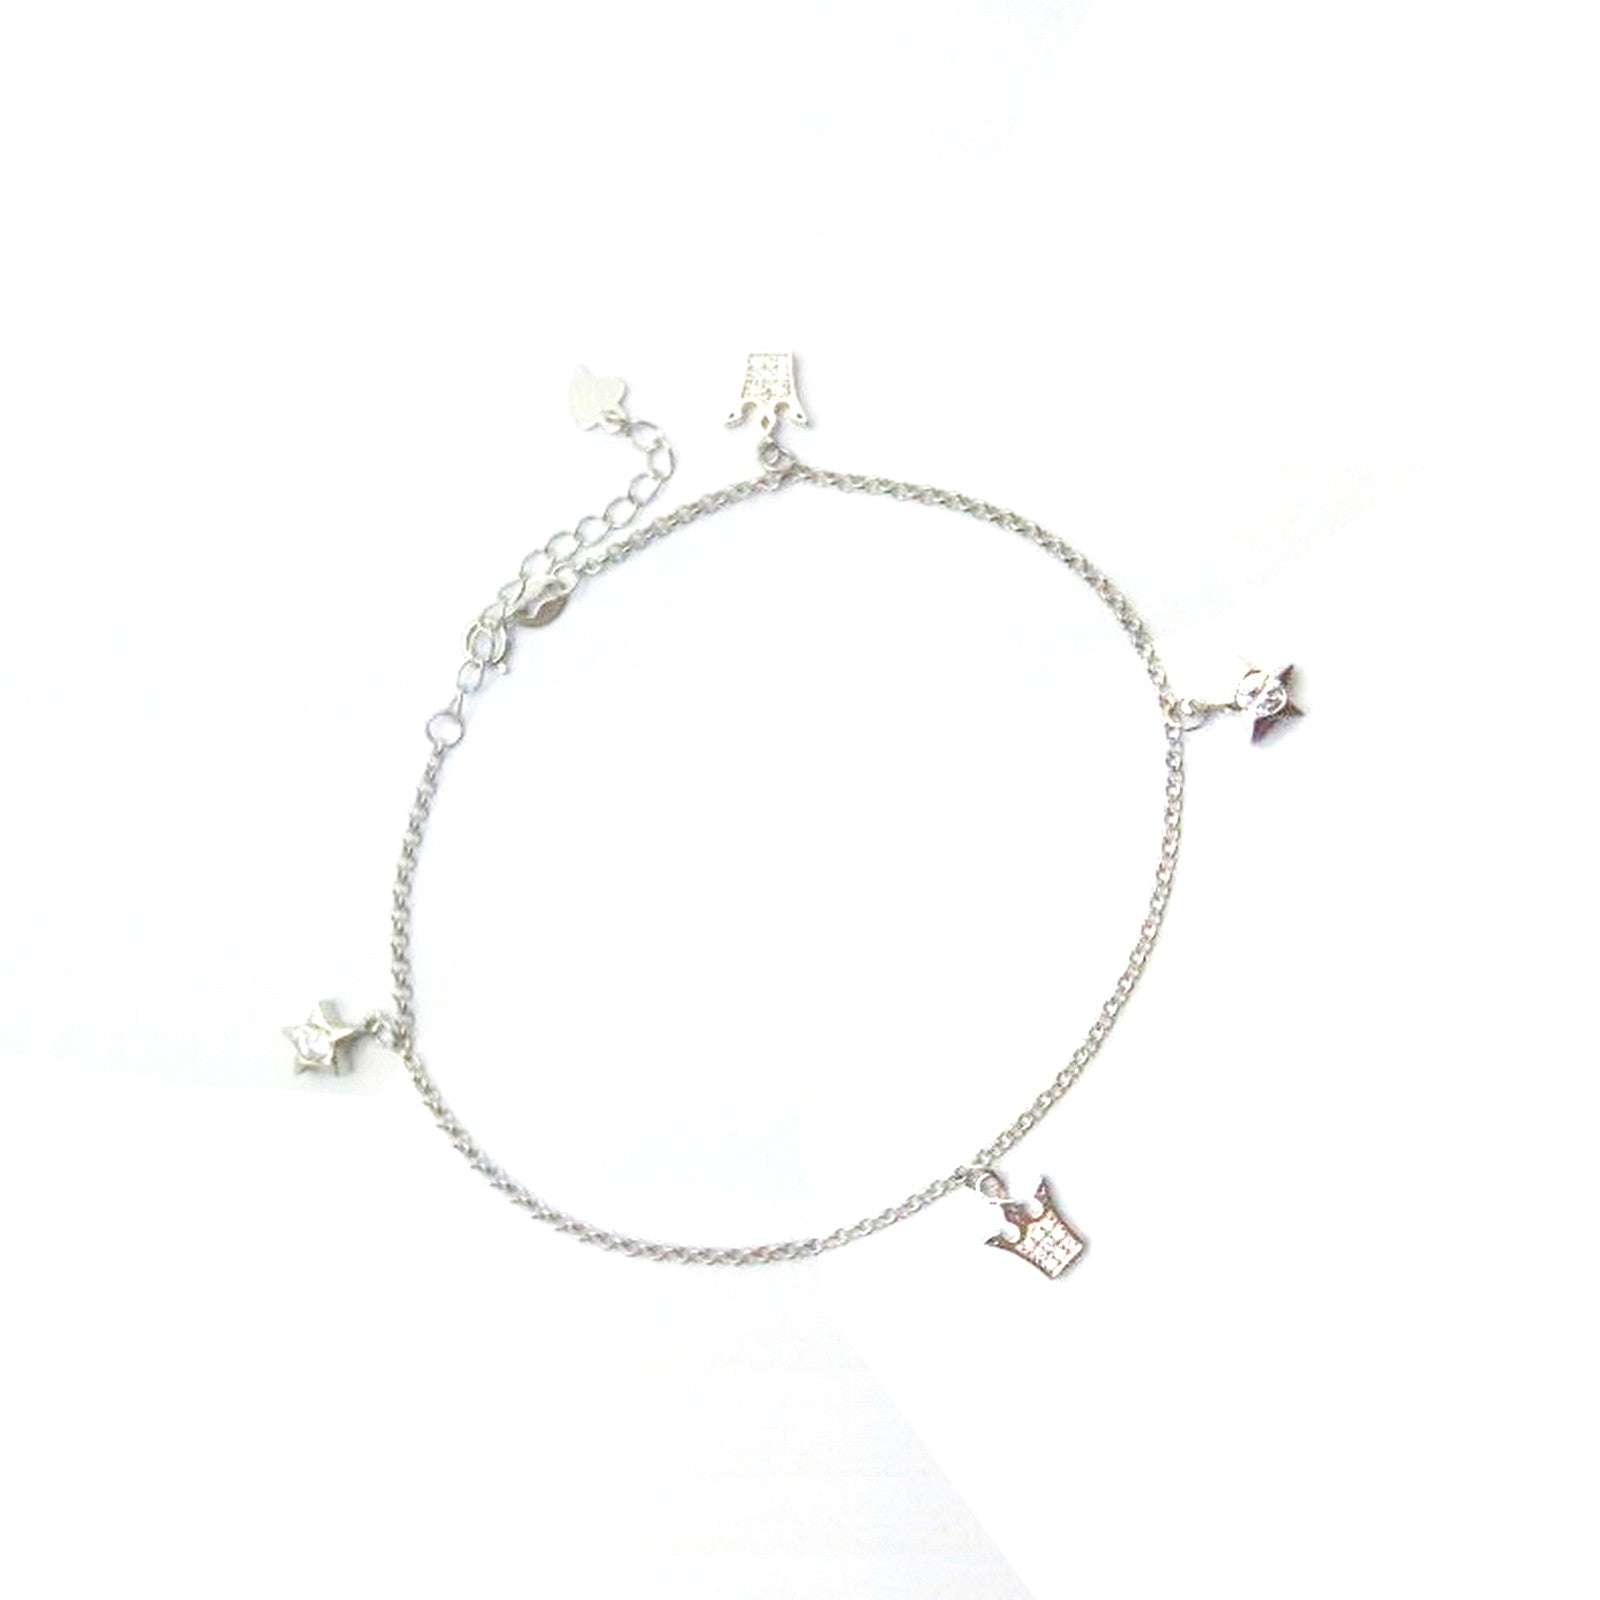 Magnificent Stars and Crowns Silver Anklet